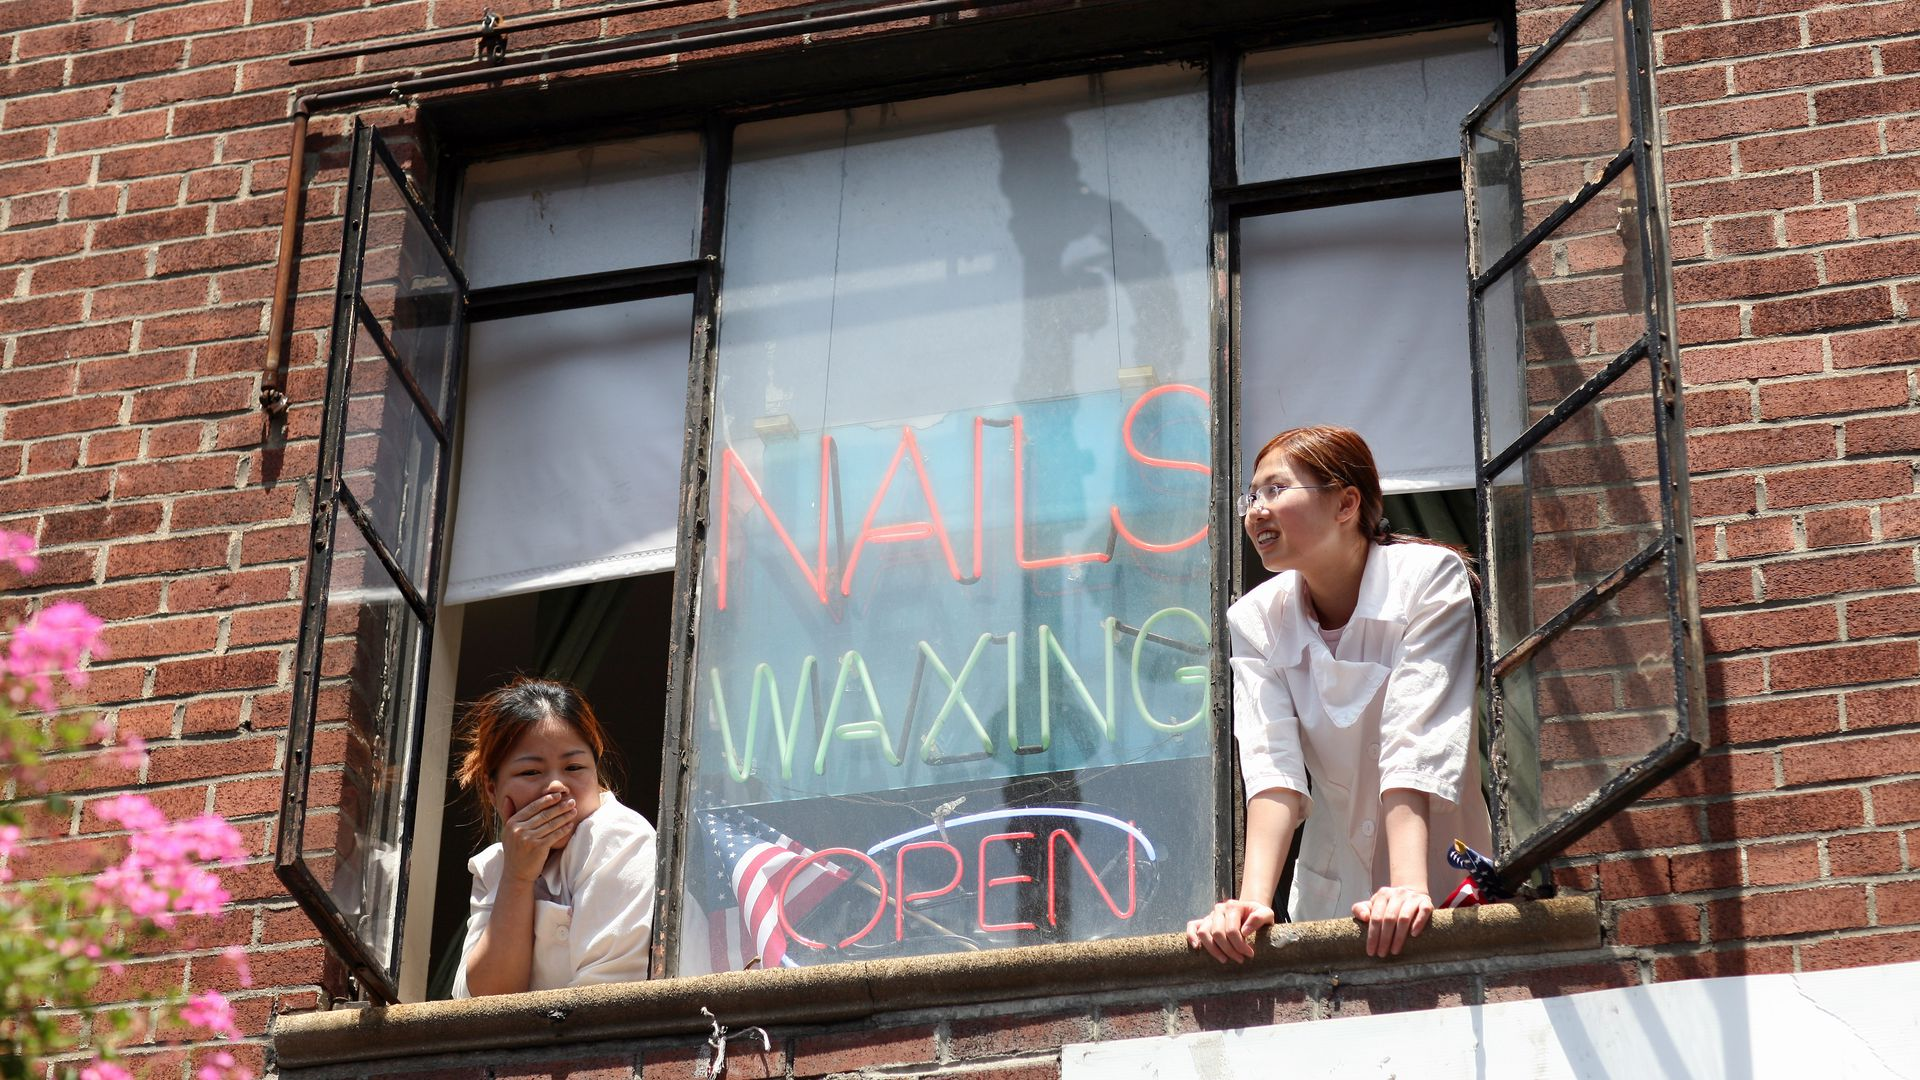 Two women look out the window of a salon